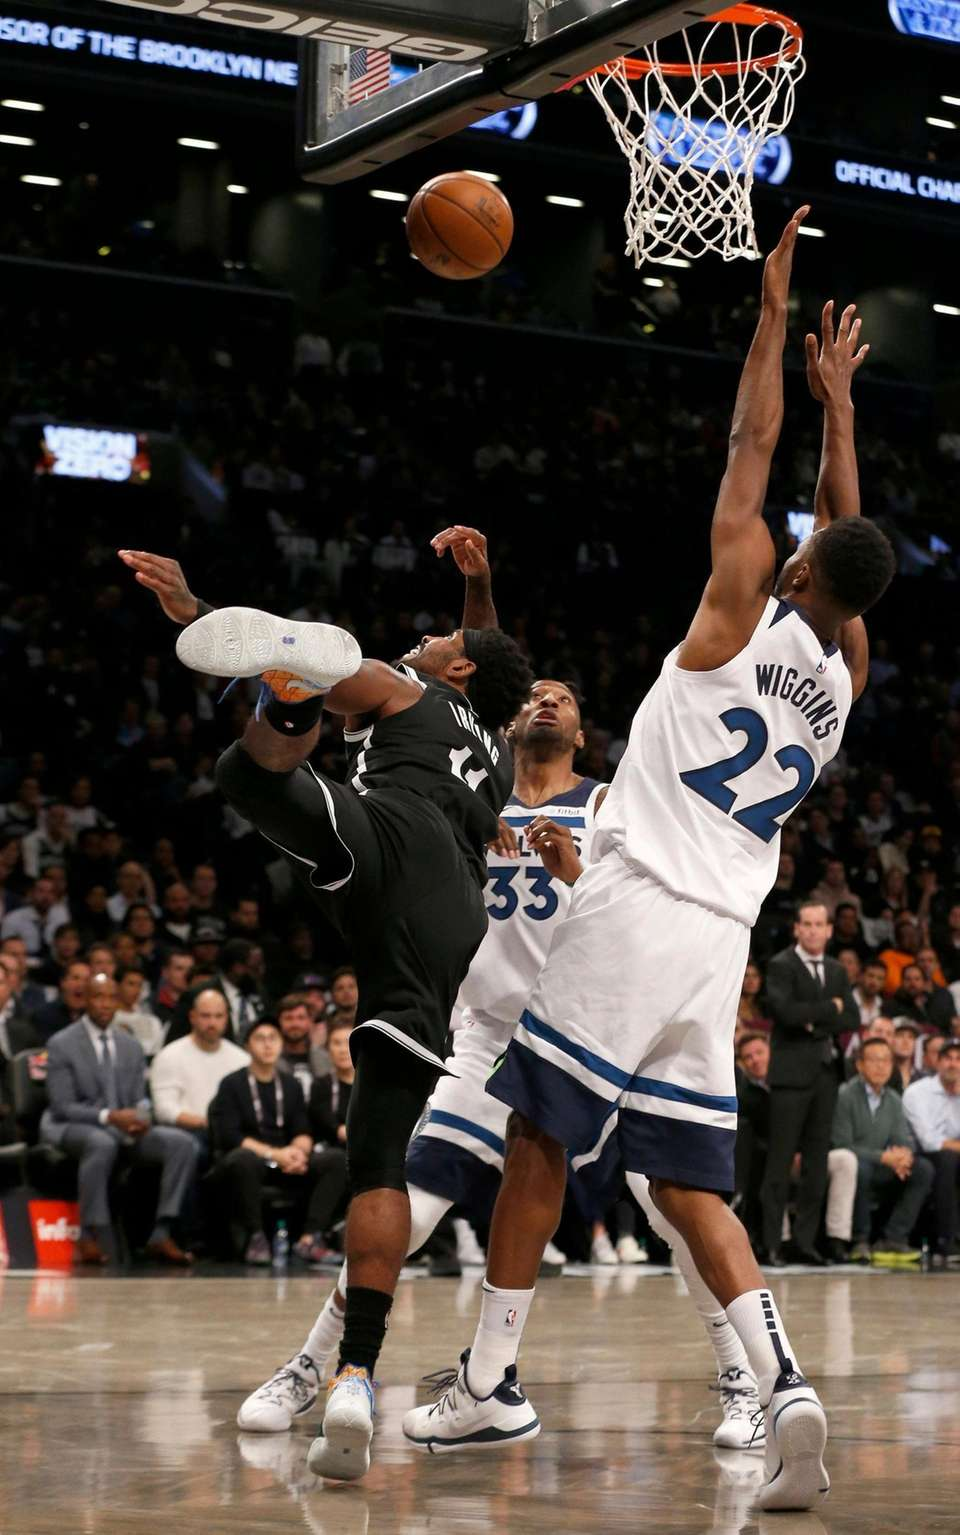 Kyrie Irving #11 of the Brooklyn Nets puts